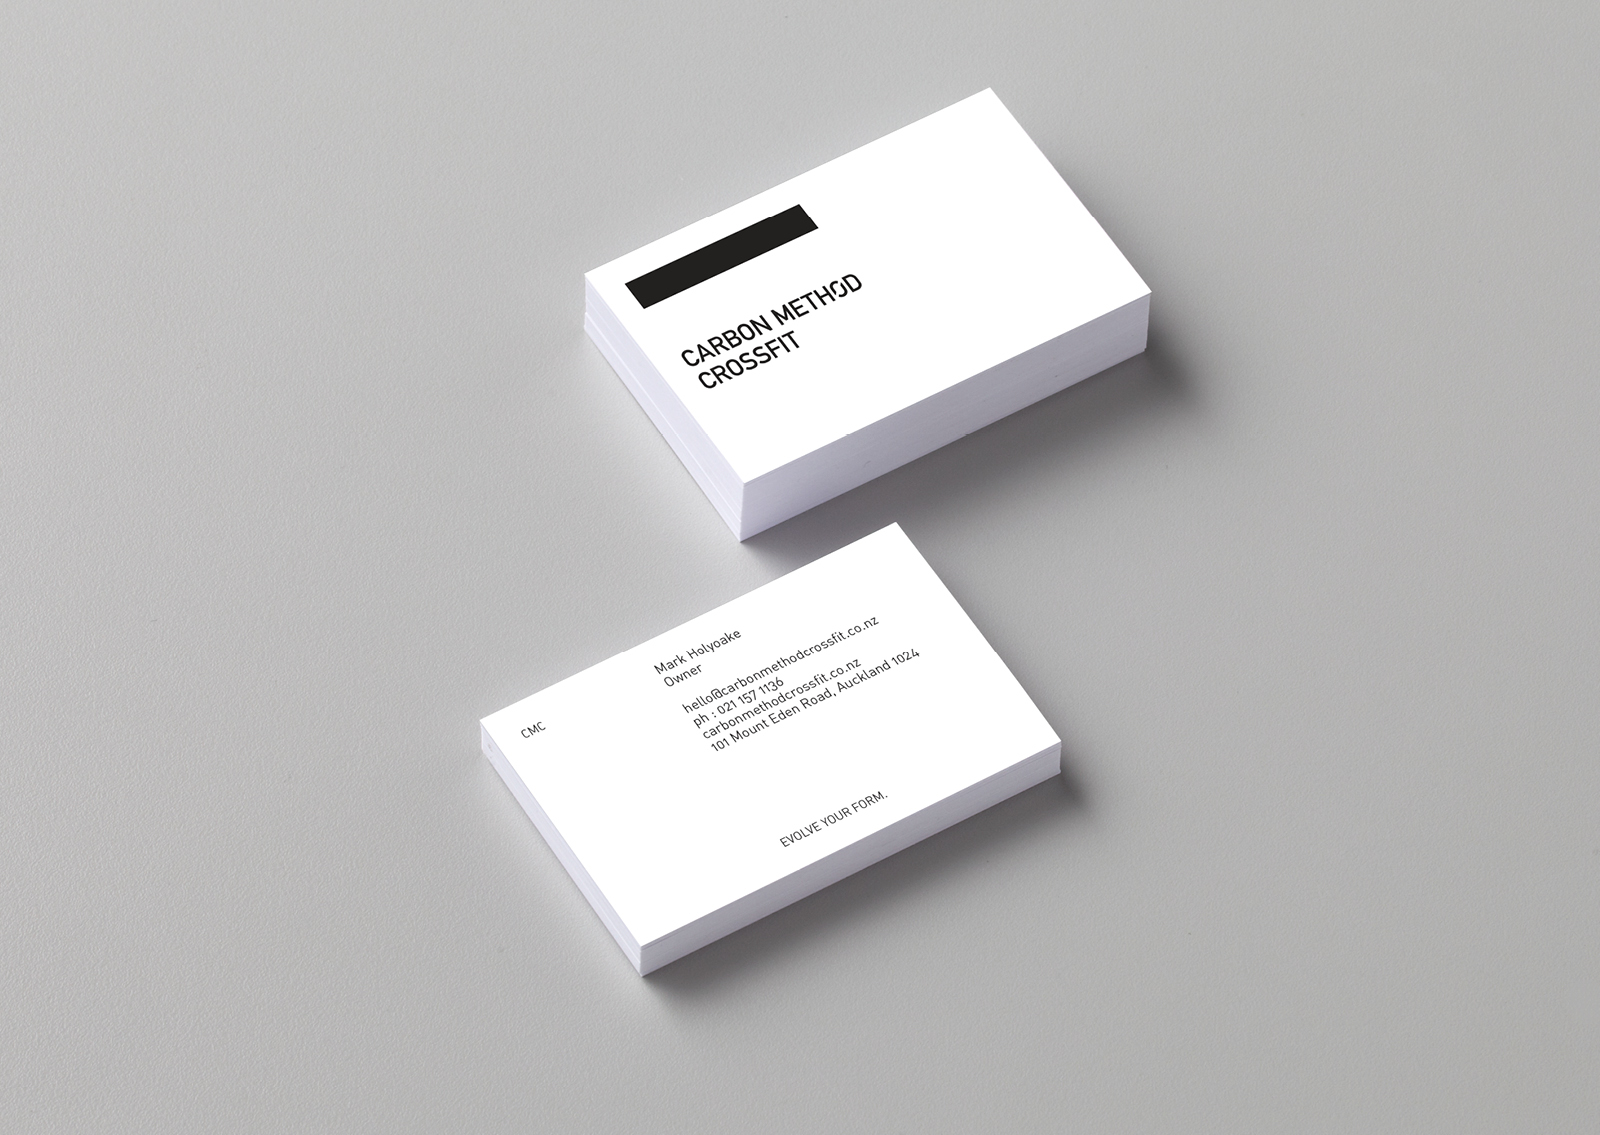 Carbon Method Crossfit Business Card